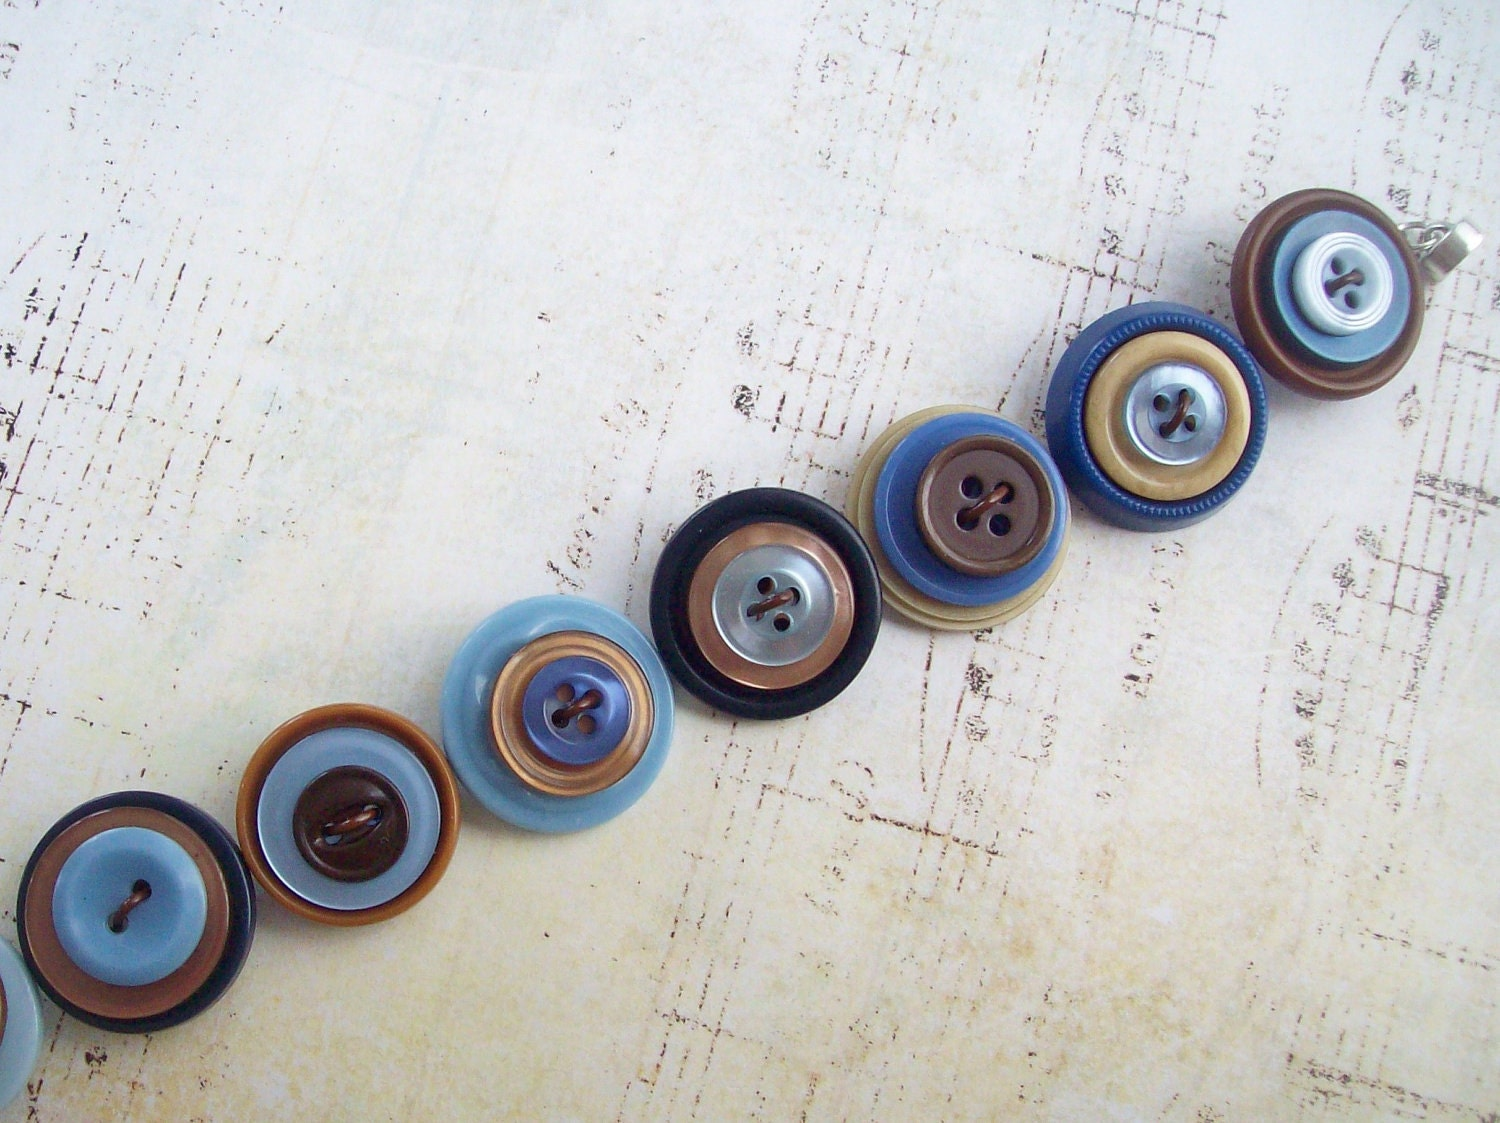 Repurposed Vintage Button Bracelet with Magnetic Clasp - DixiesNightOwl